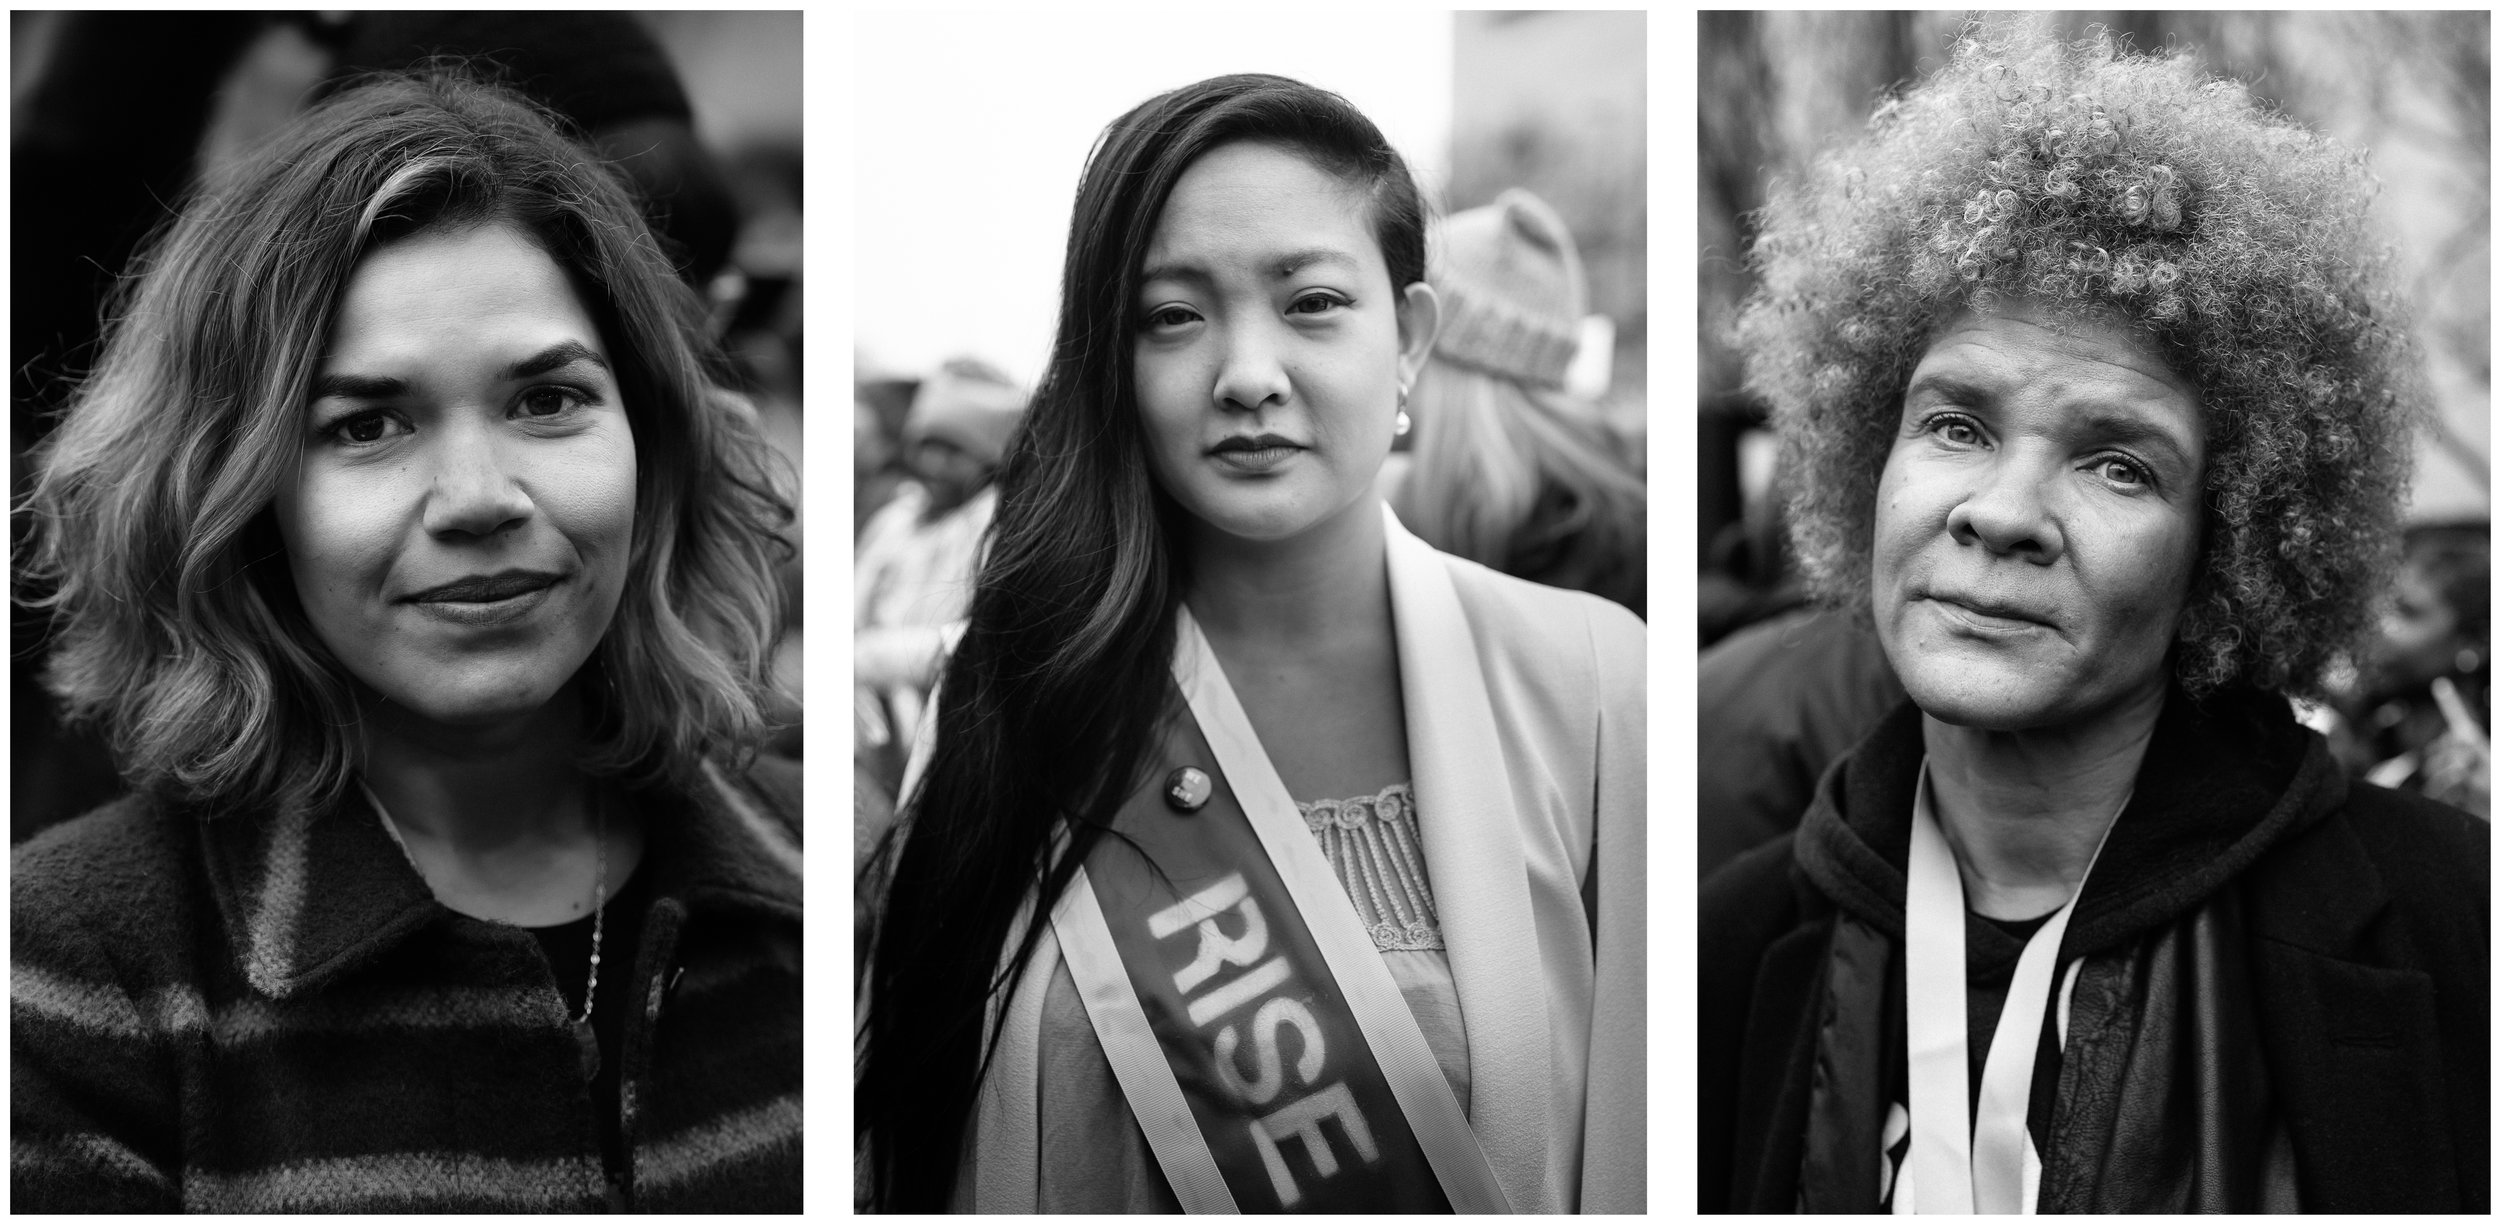 Actress America Ferrera, Rise founder Amanda Nguyen, and activist Angela Davis at the 2017 Women's March on Washington.